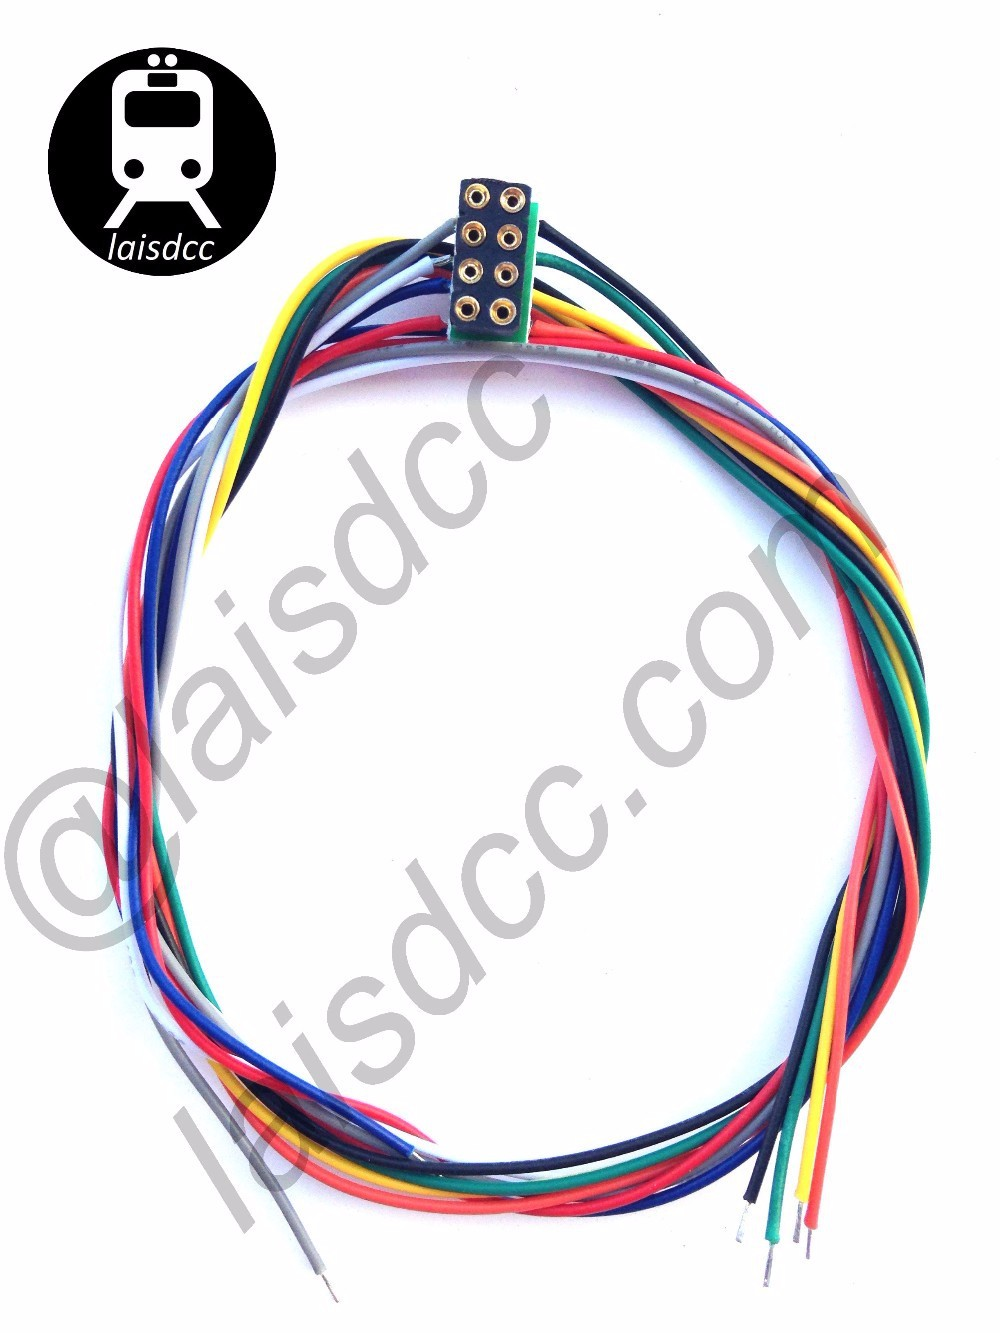 8 Pin Dcc Decoder Sockets Nem 652 With Wired Harness - Buy Dcc Decoder Dcc Wiring Harness on